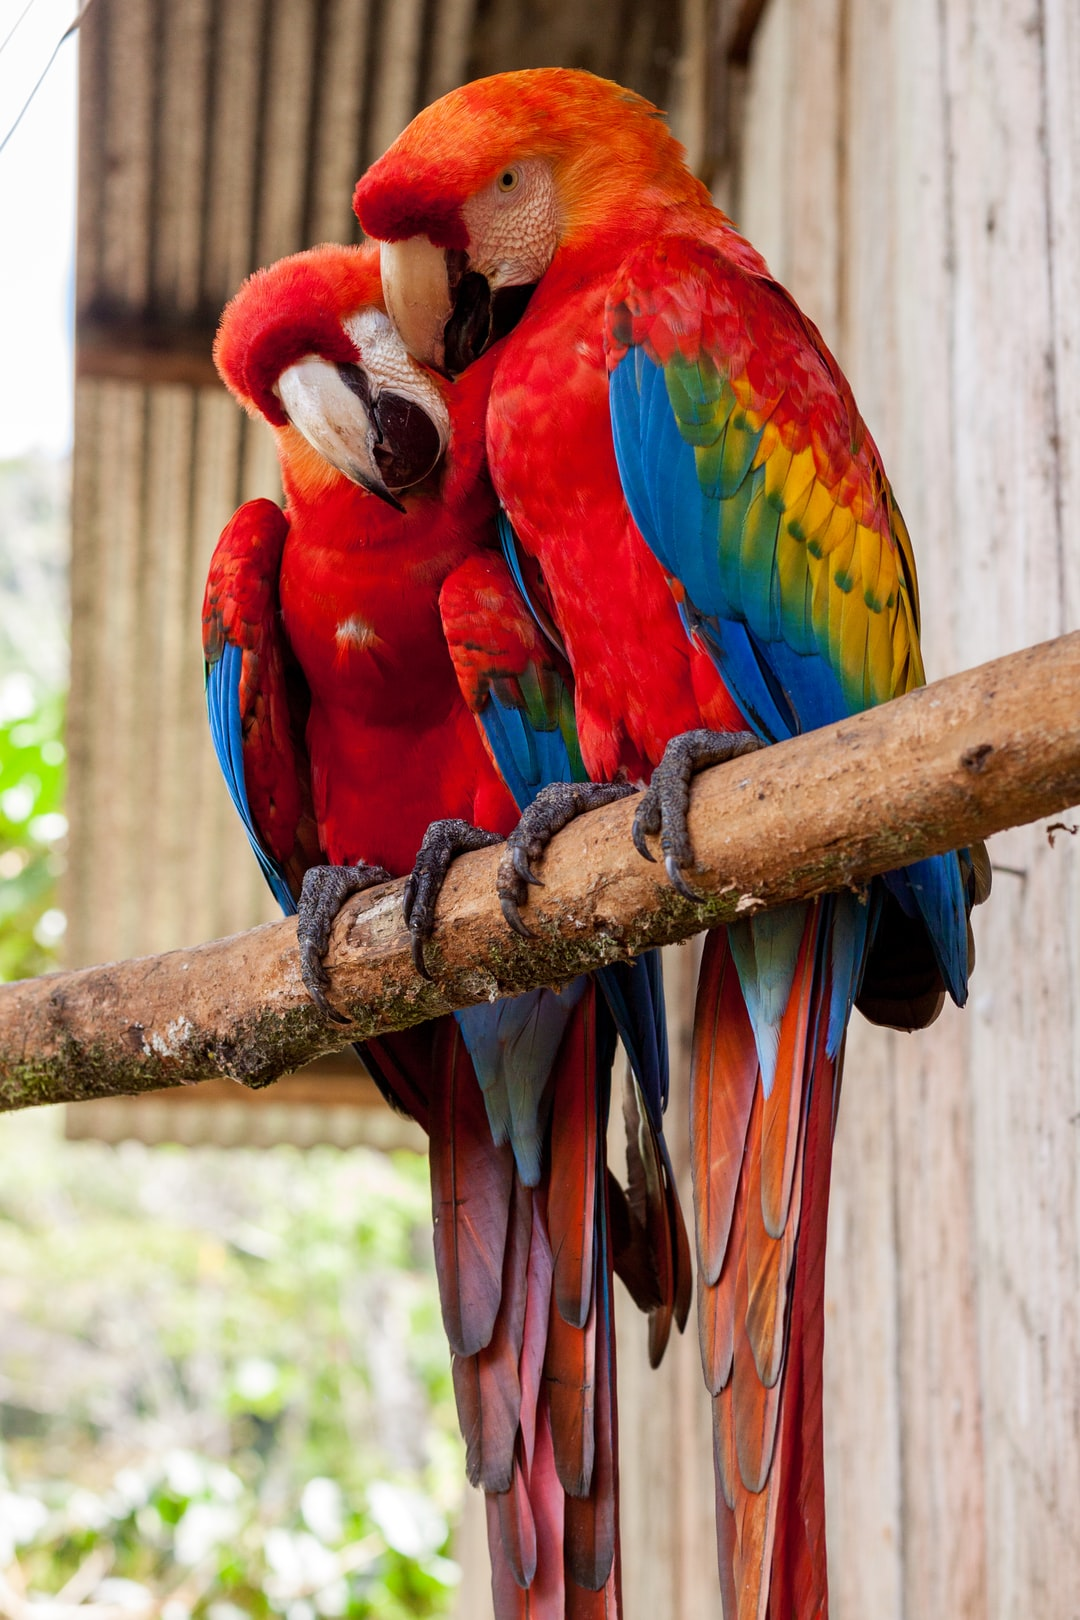 While volunteering in the Amazon rainforest we took care of these beautiful Scarlet Macaws. 